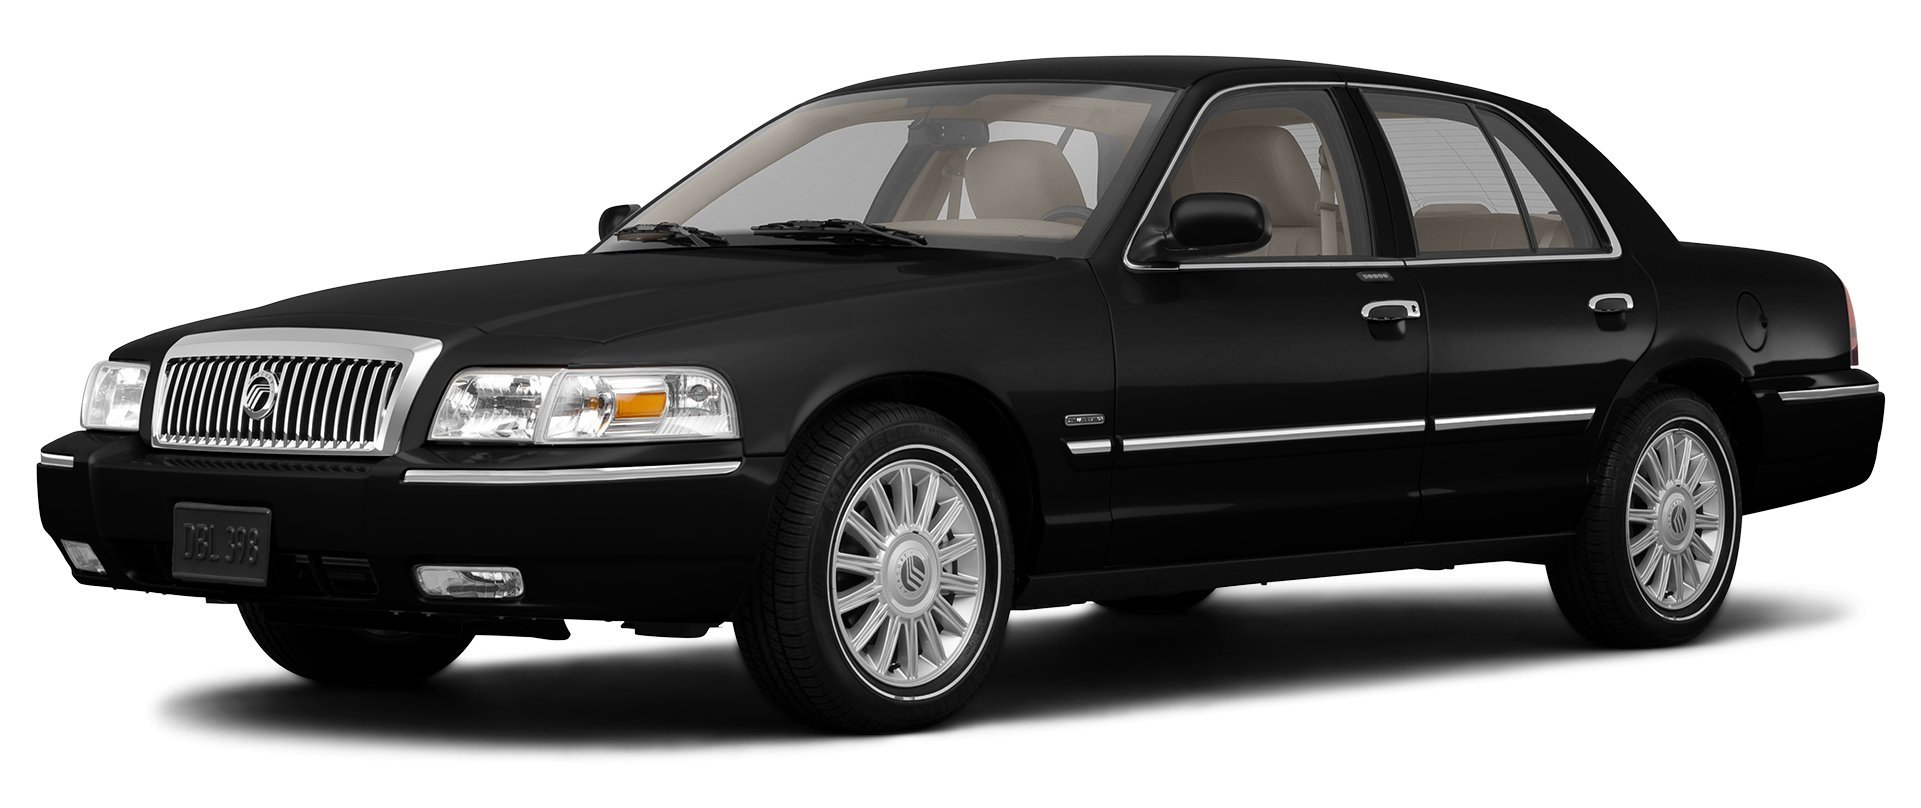 2011 Lincoln Town Car Signature L, 4-Door Sedan, 2011 Mercury Grand Marquis  LS, 4-Door Sedan